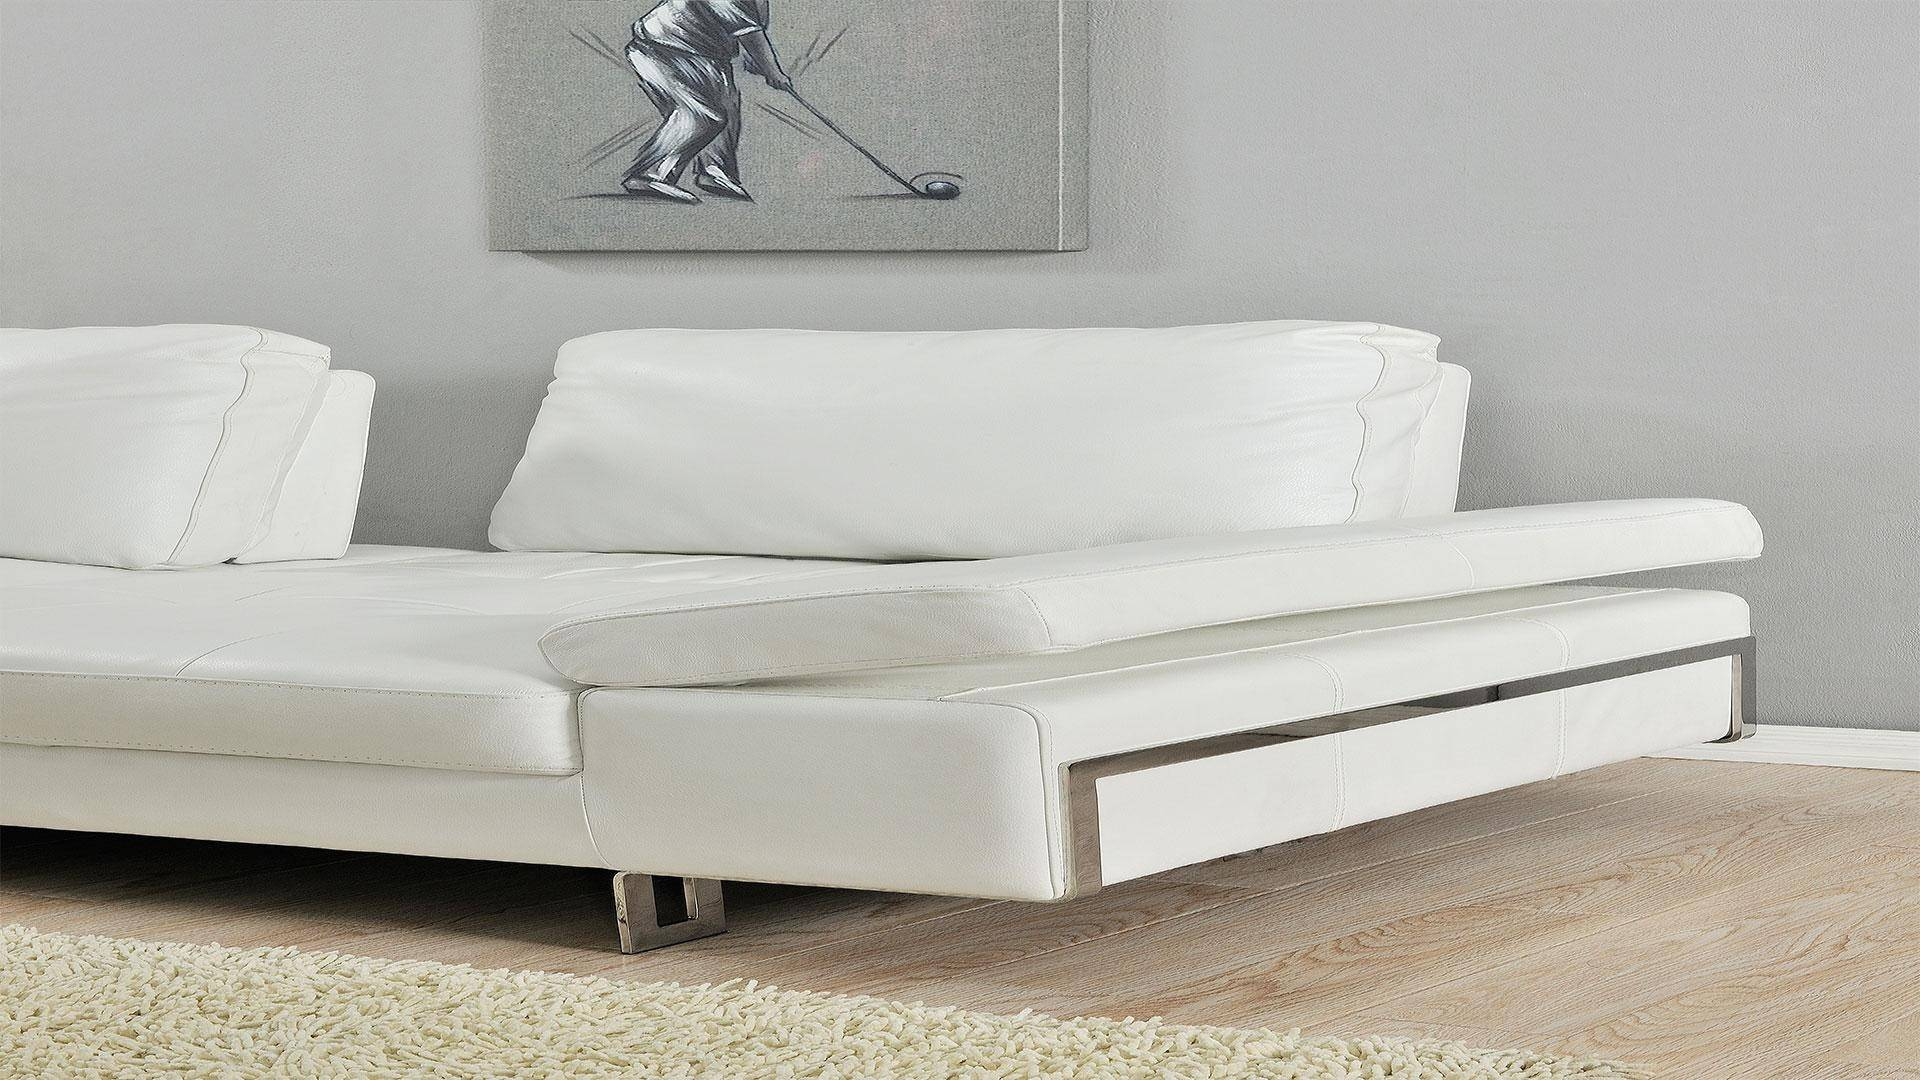 At Home USA Gia White Luxury Italian Leather Ultra Modern Sofa ...